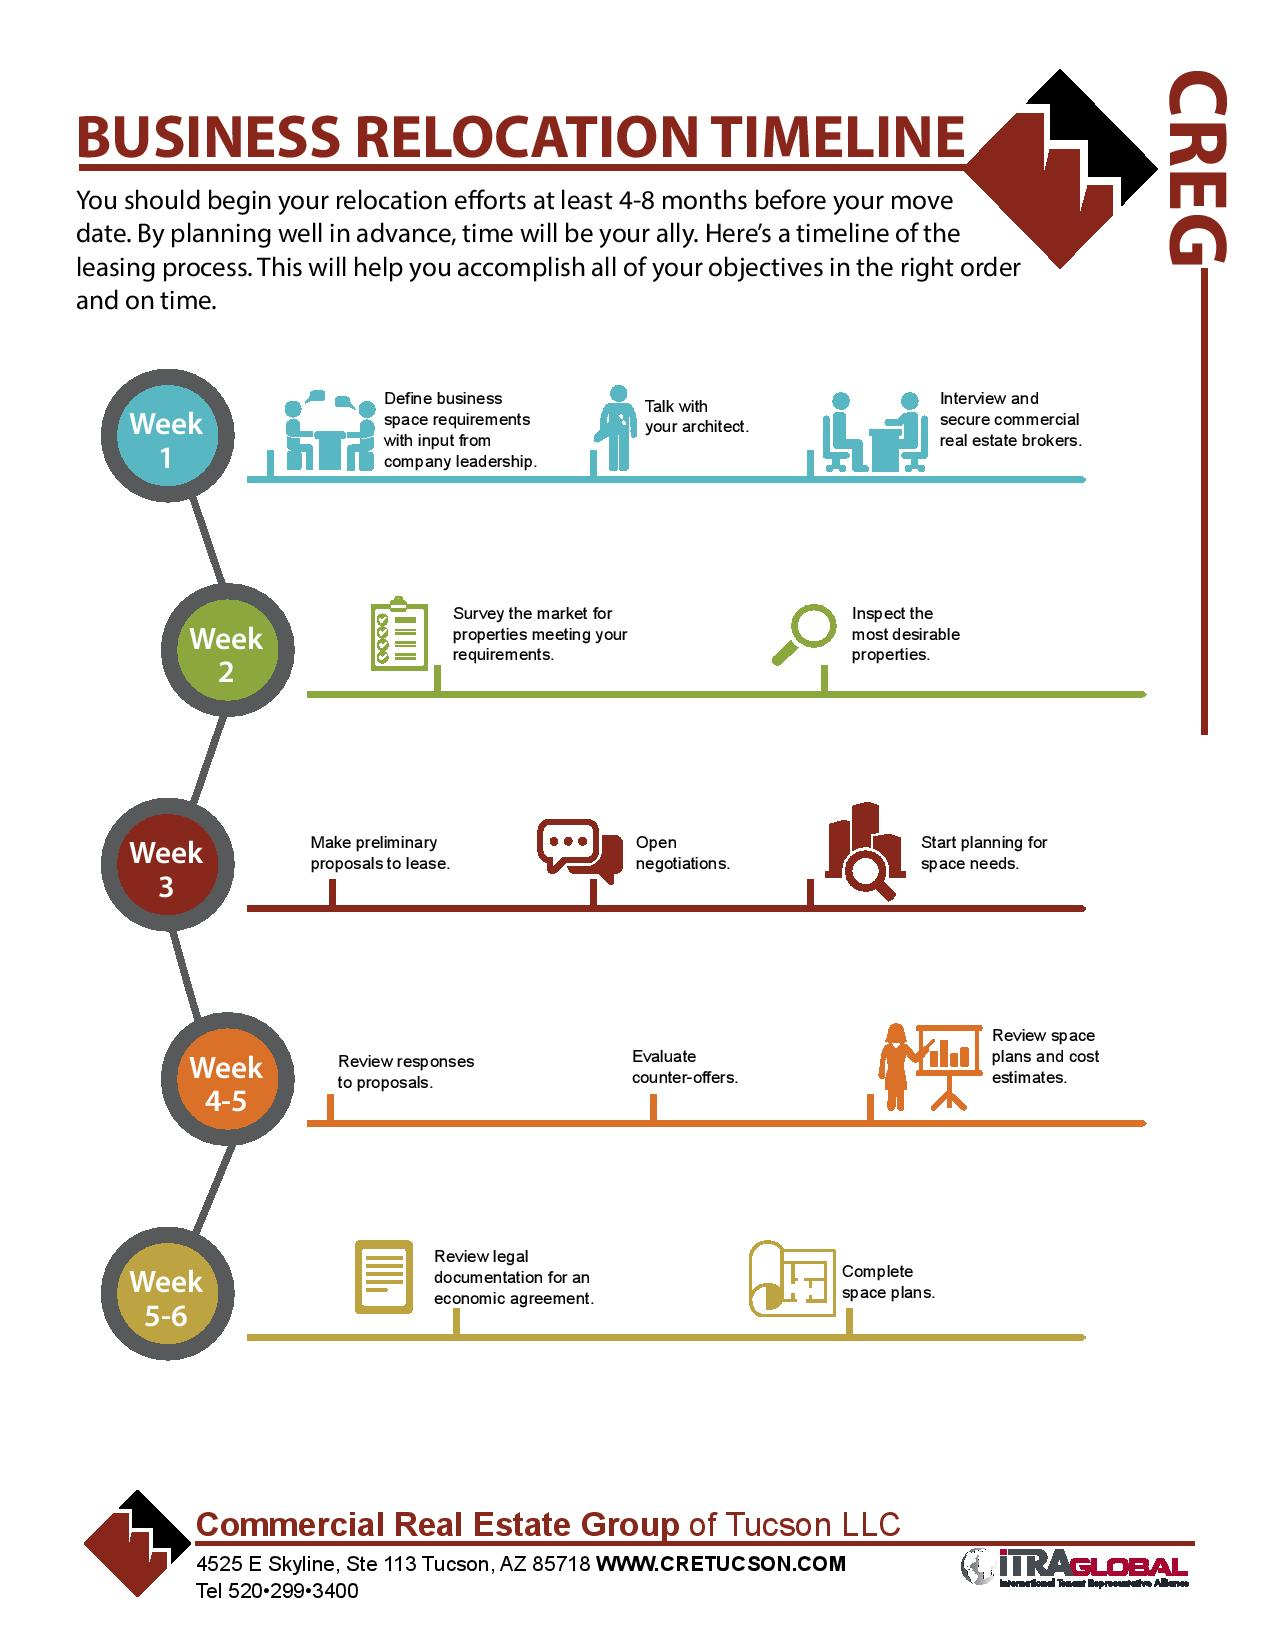 Business Relocation Timeline infographic